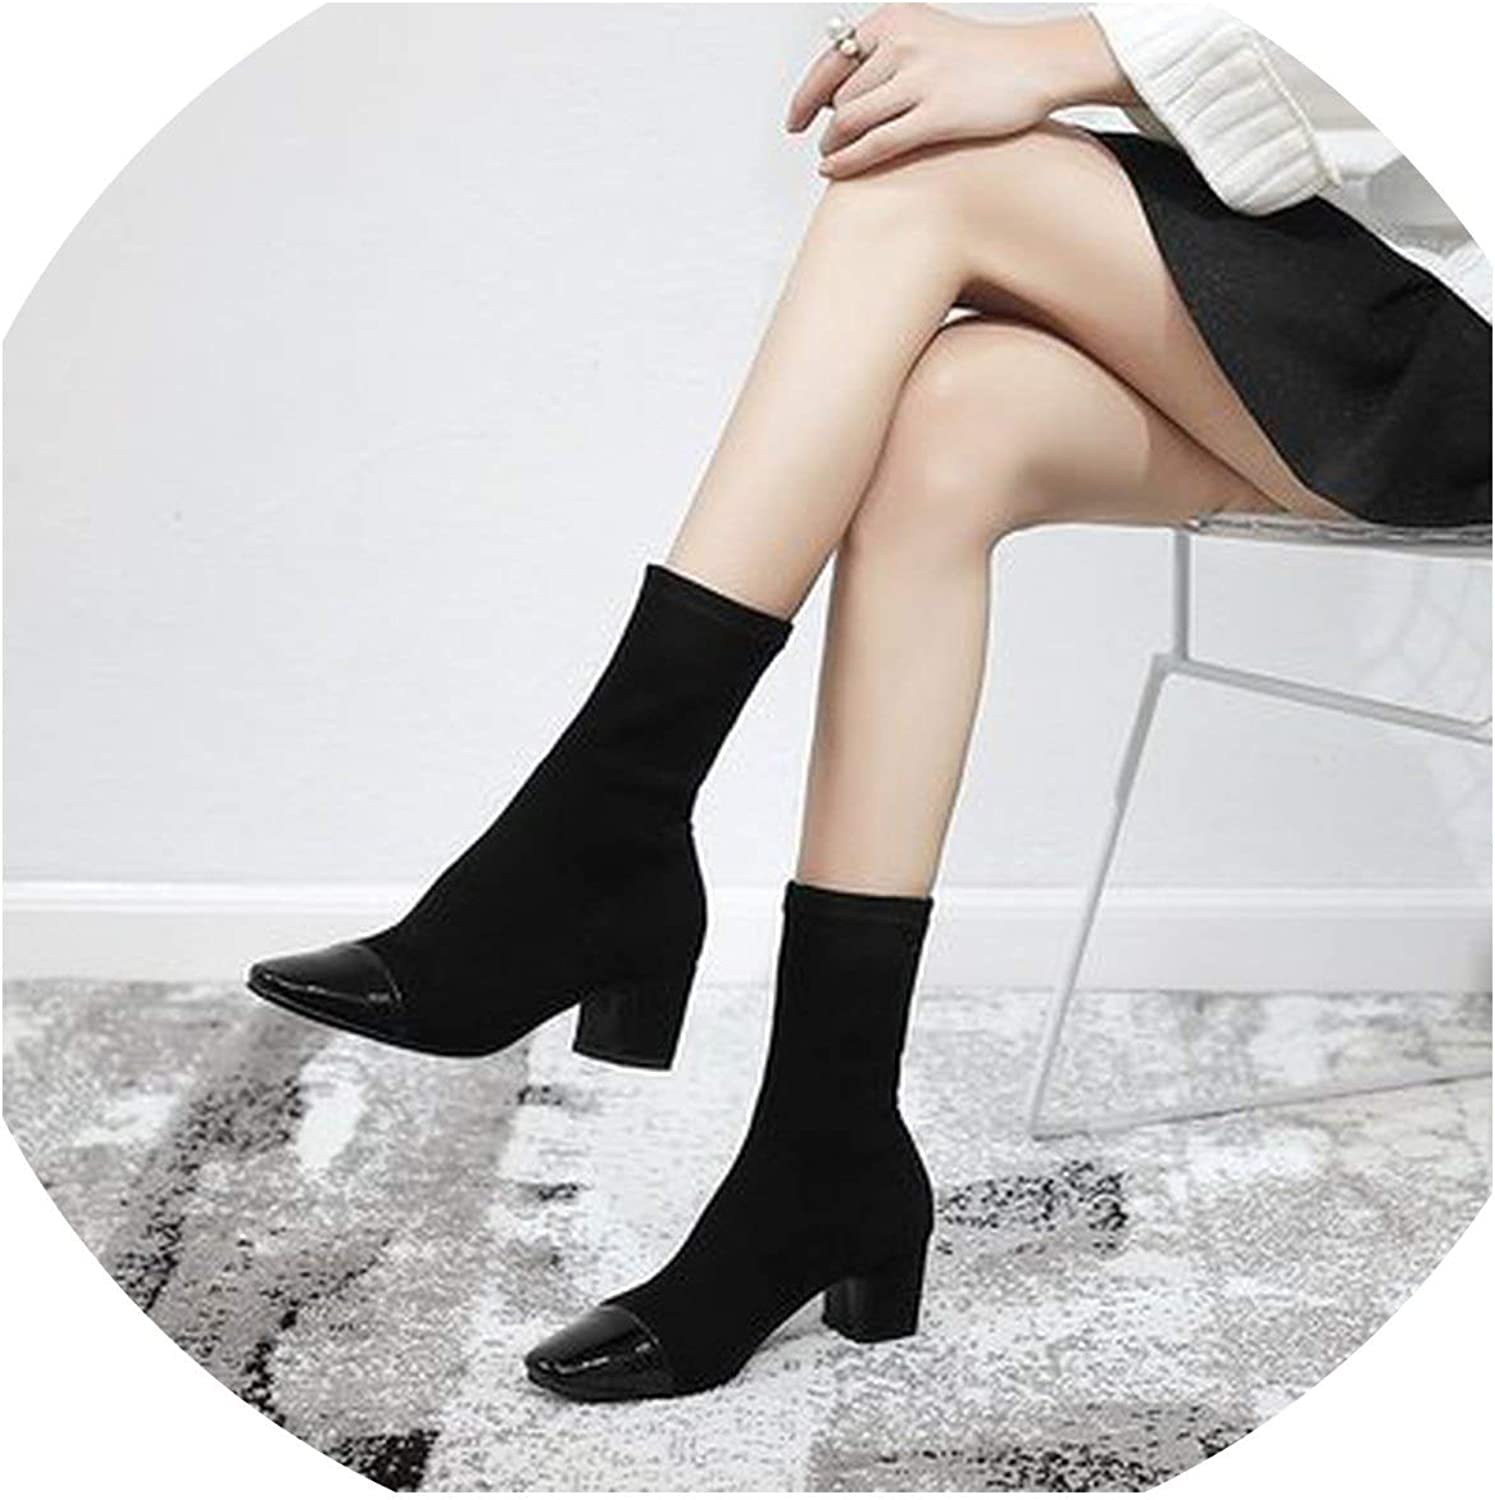 Women shoes Winter Elastic Boots Stovepipe Socks Tube Pointed Toe Women Boots